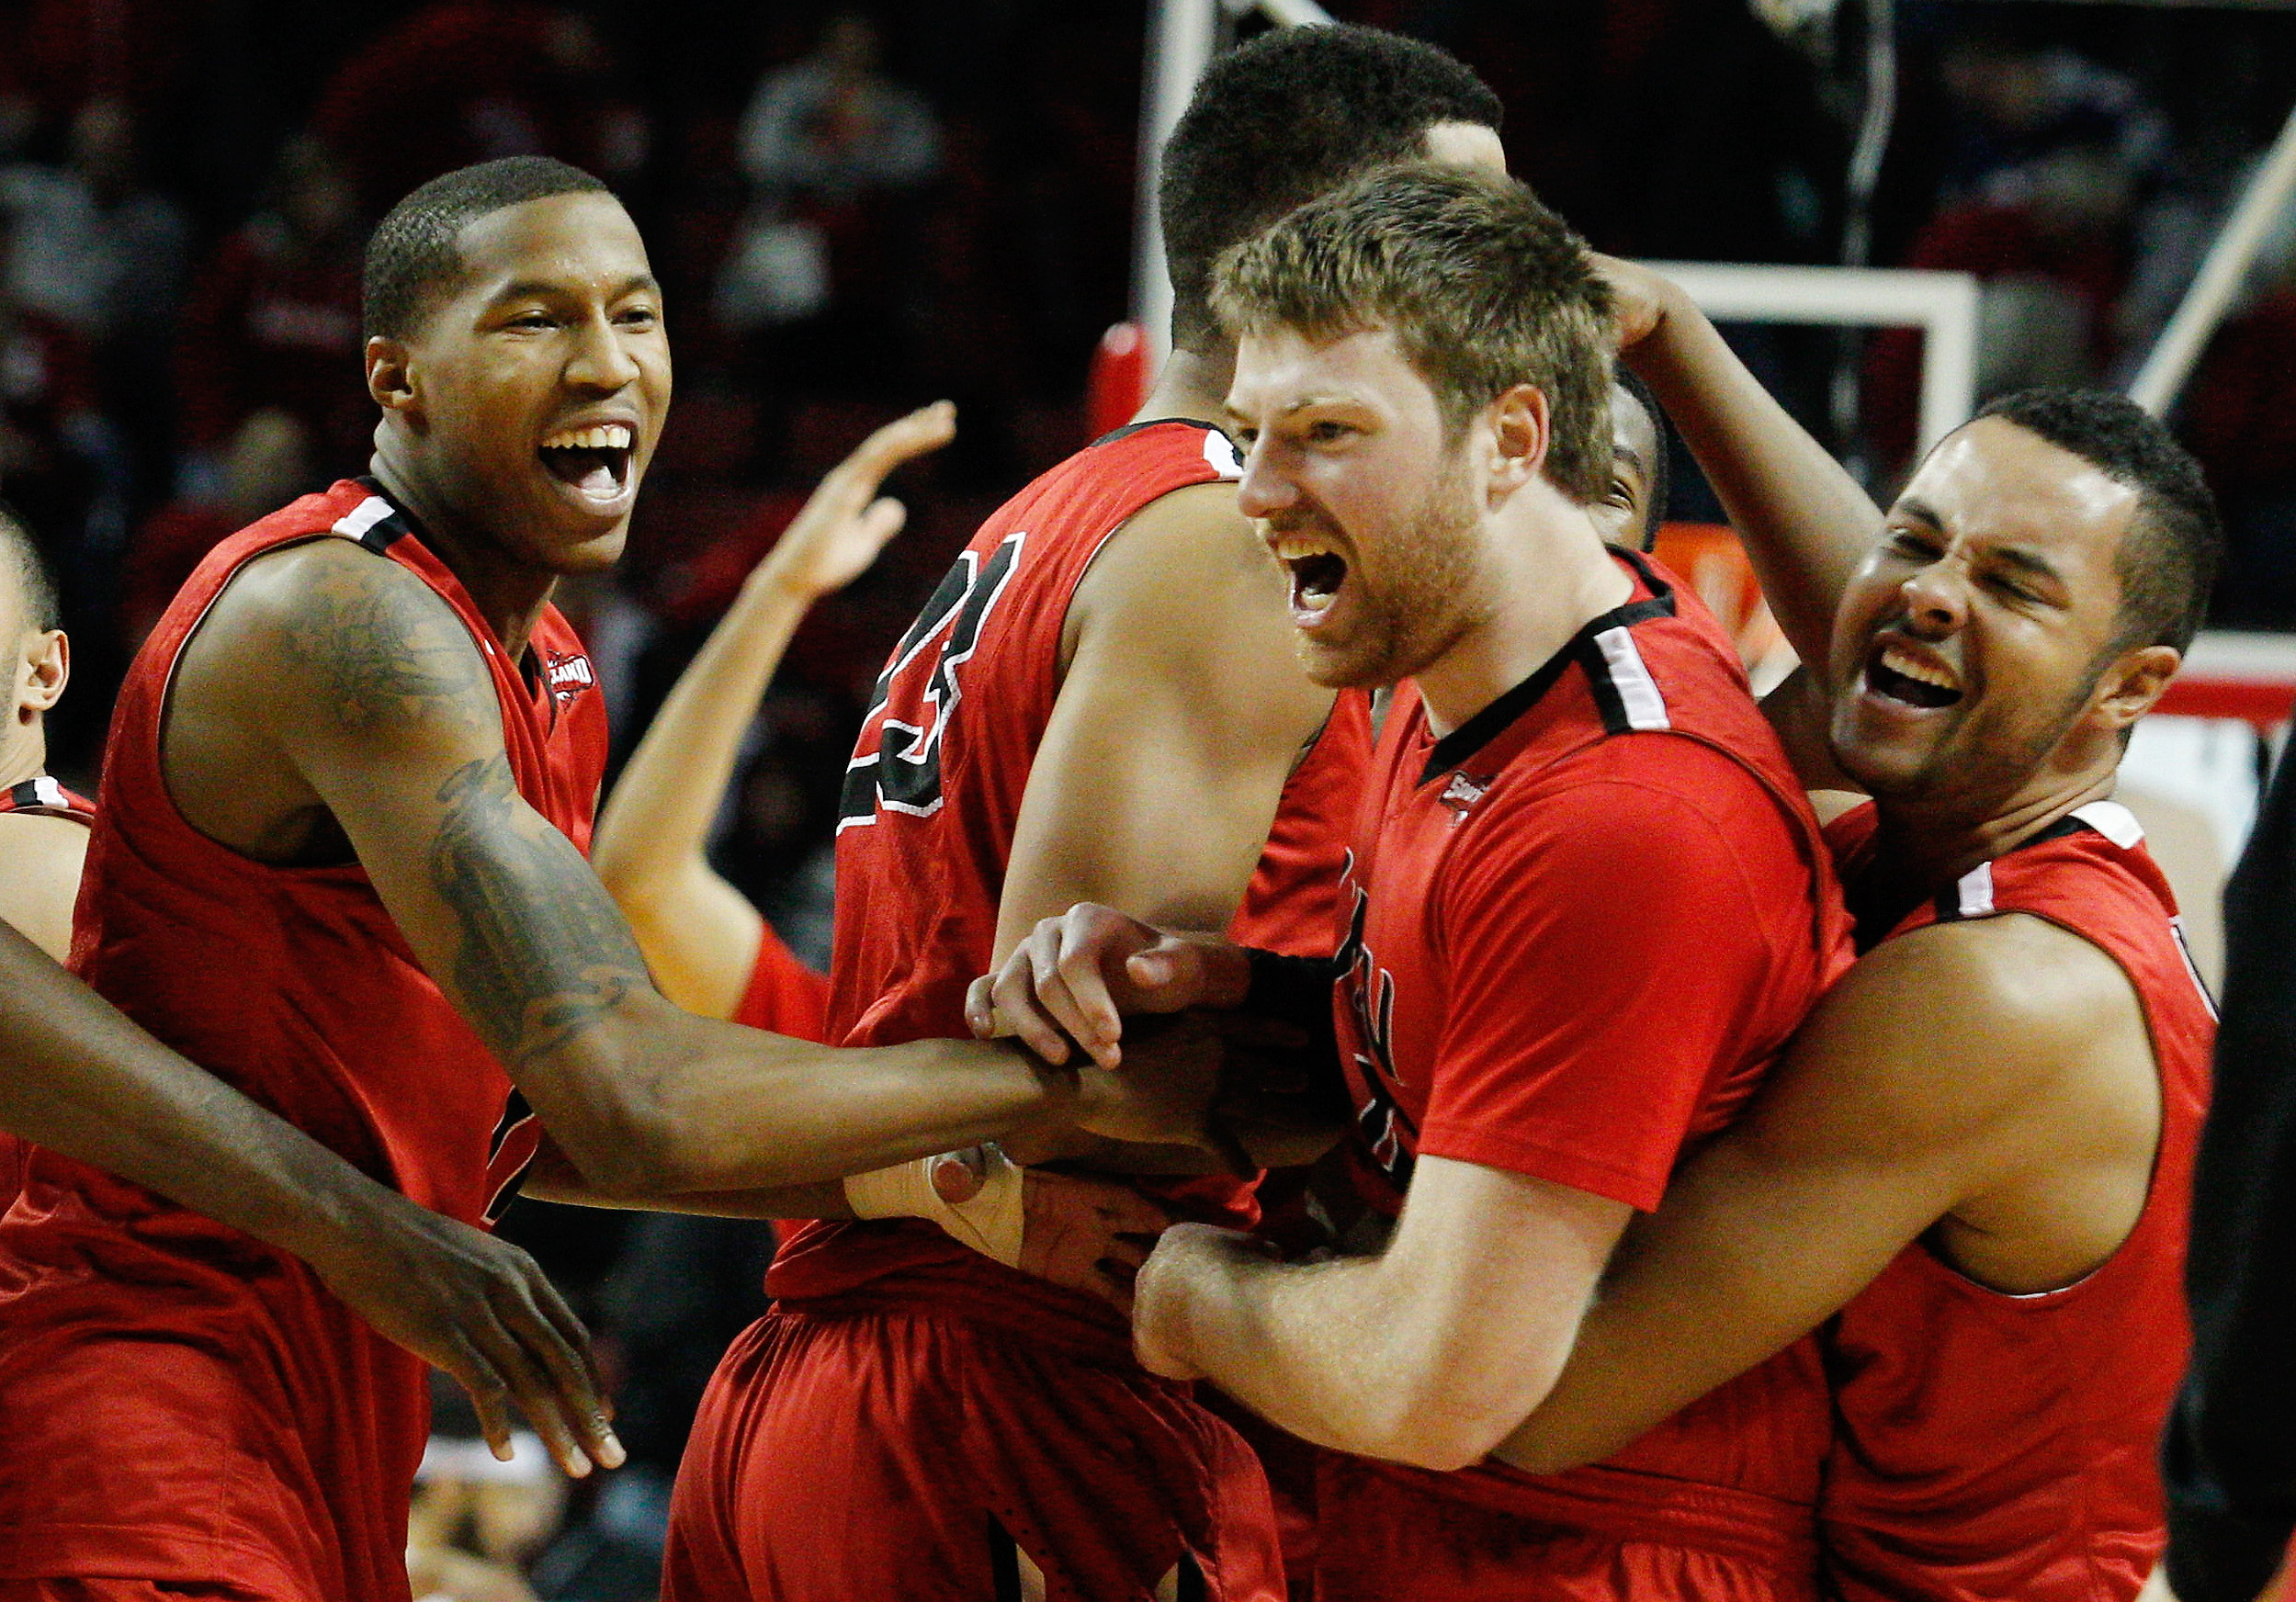 Incarnate Word Cardinals  guard Kyle Hittle (4) celebrates with teammates after defeating the Nebraska Cornhuskers in the second half at Pinnacle Bank Arena. Hittle scored the game-winning basket in the final seconds of the game. Incarnate Word won 74-73. (Bruce Thorson-USA TODAY Sports)